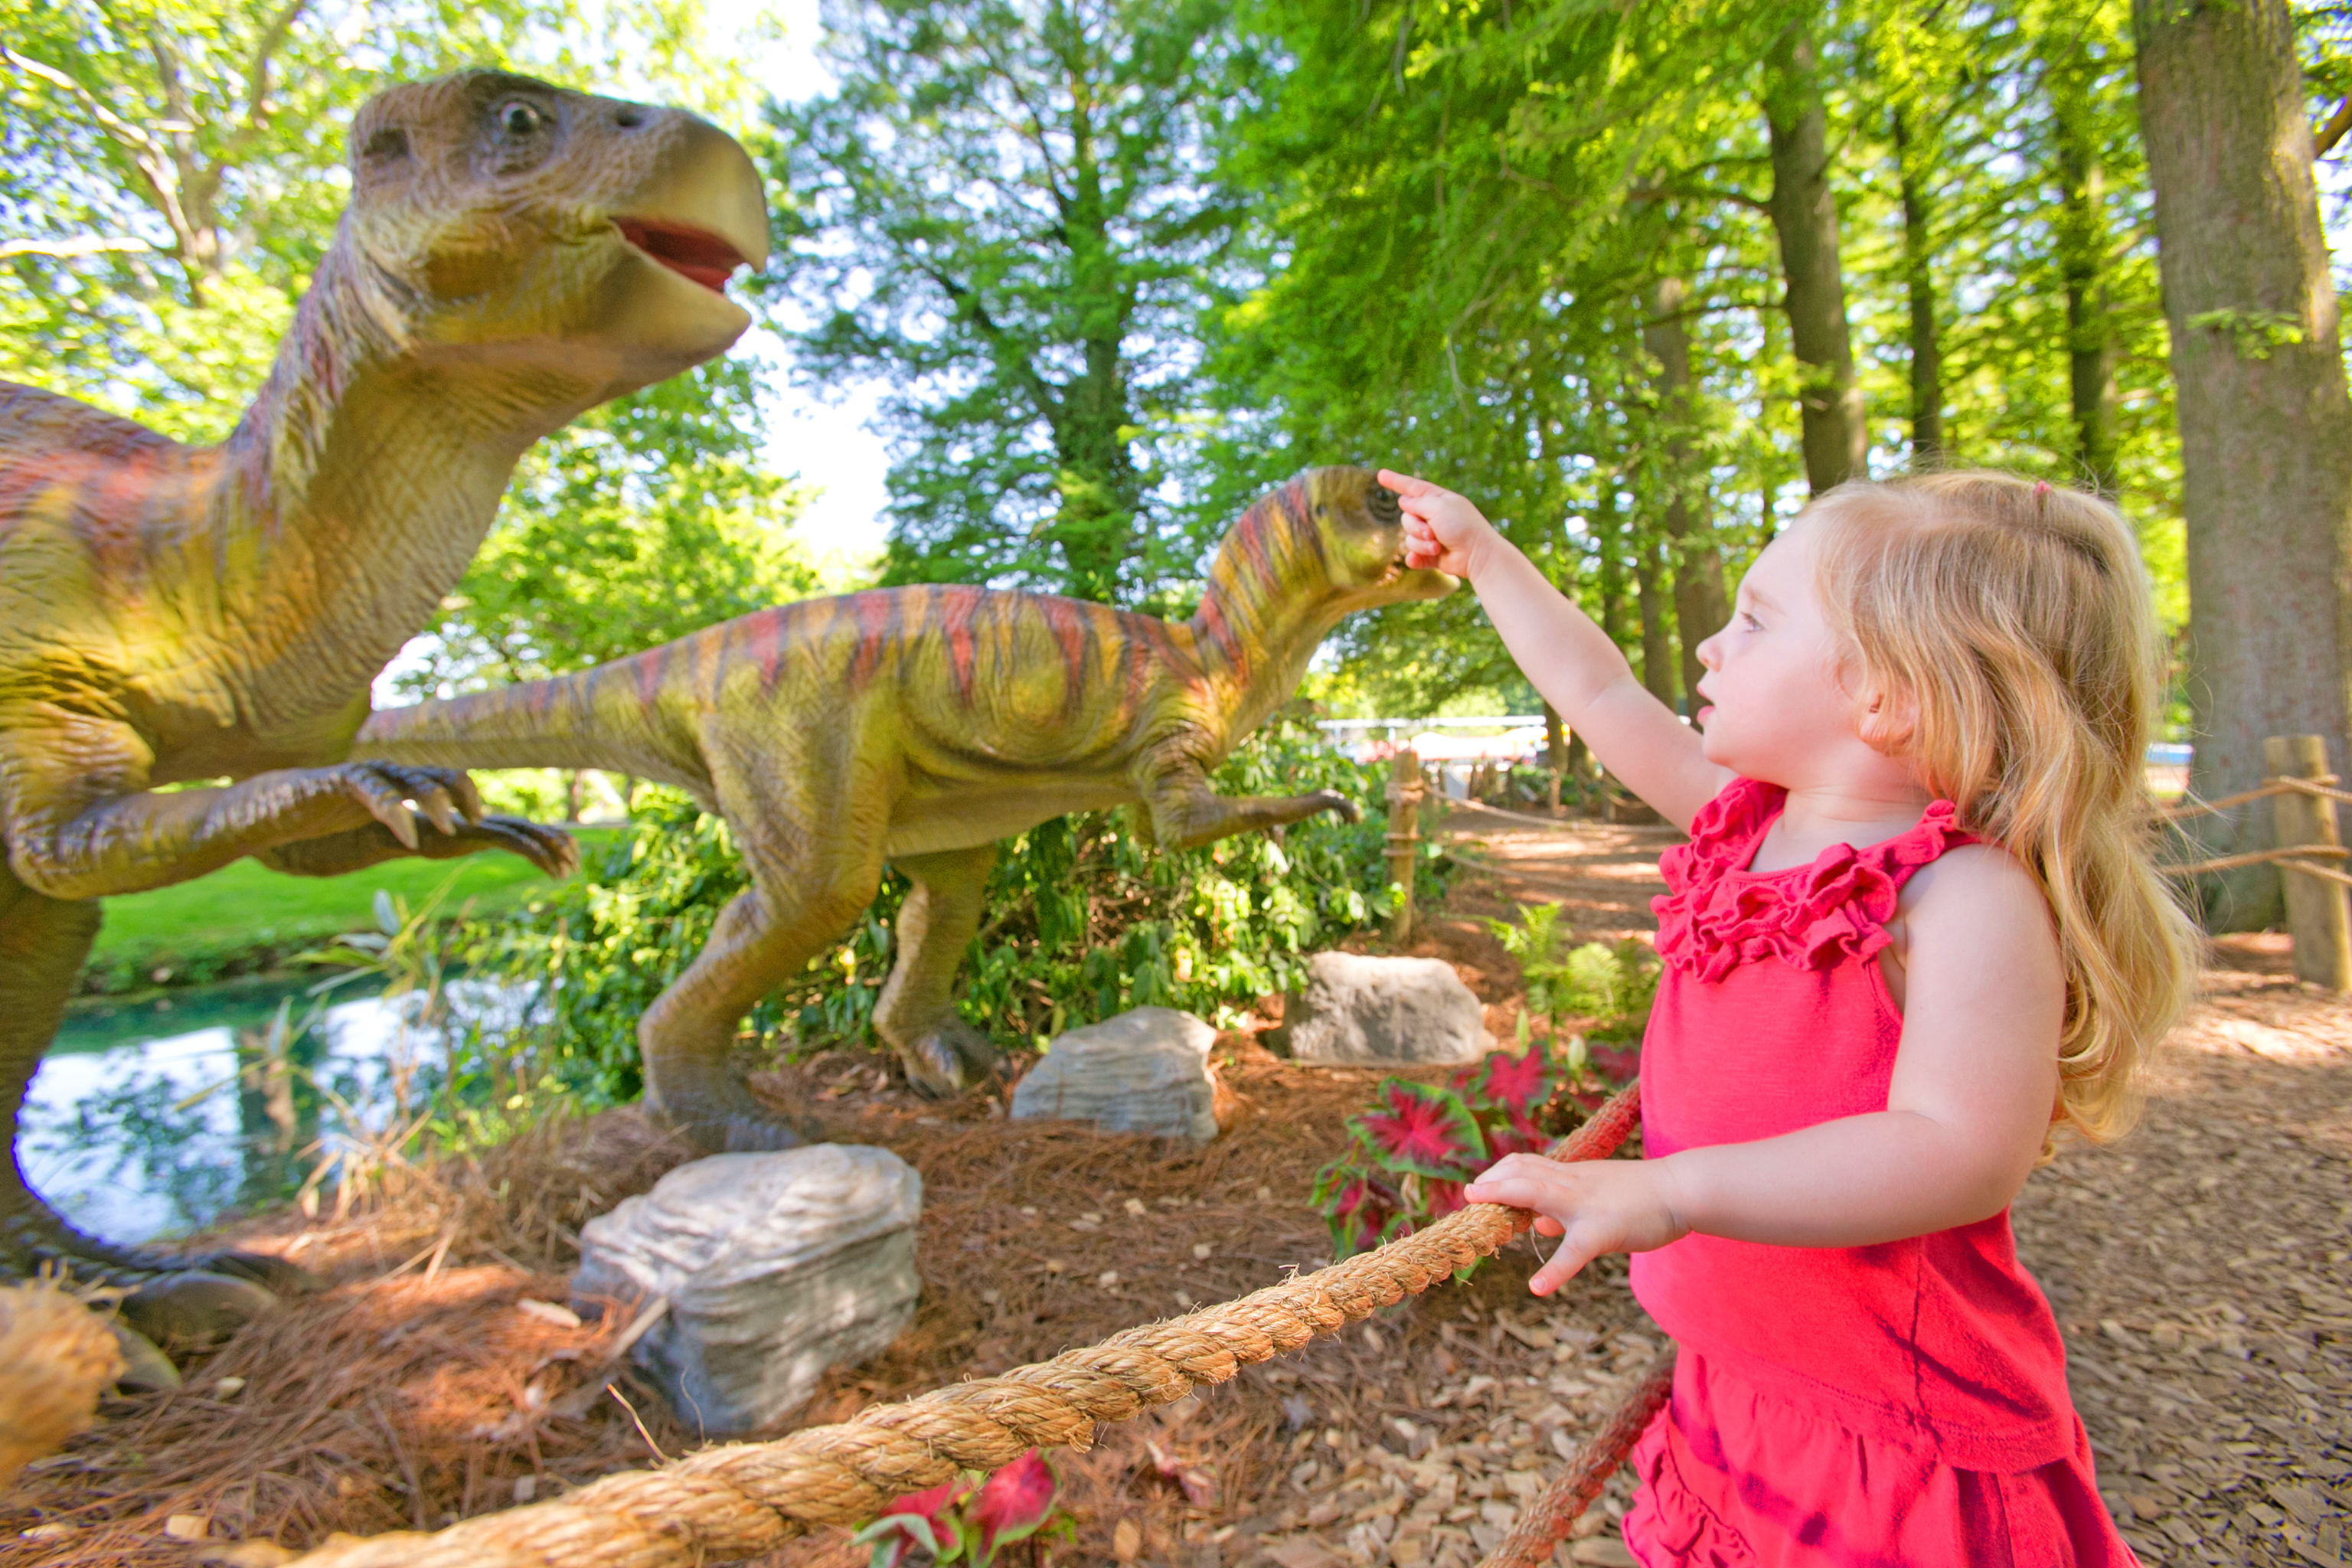 Young girl pointing at two animatronic dinosaur figures.